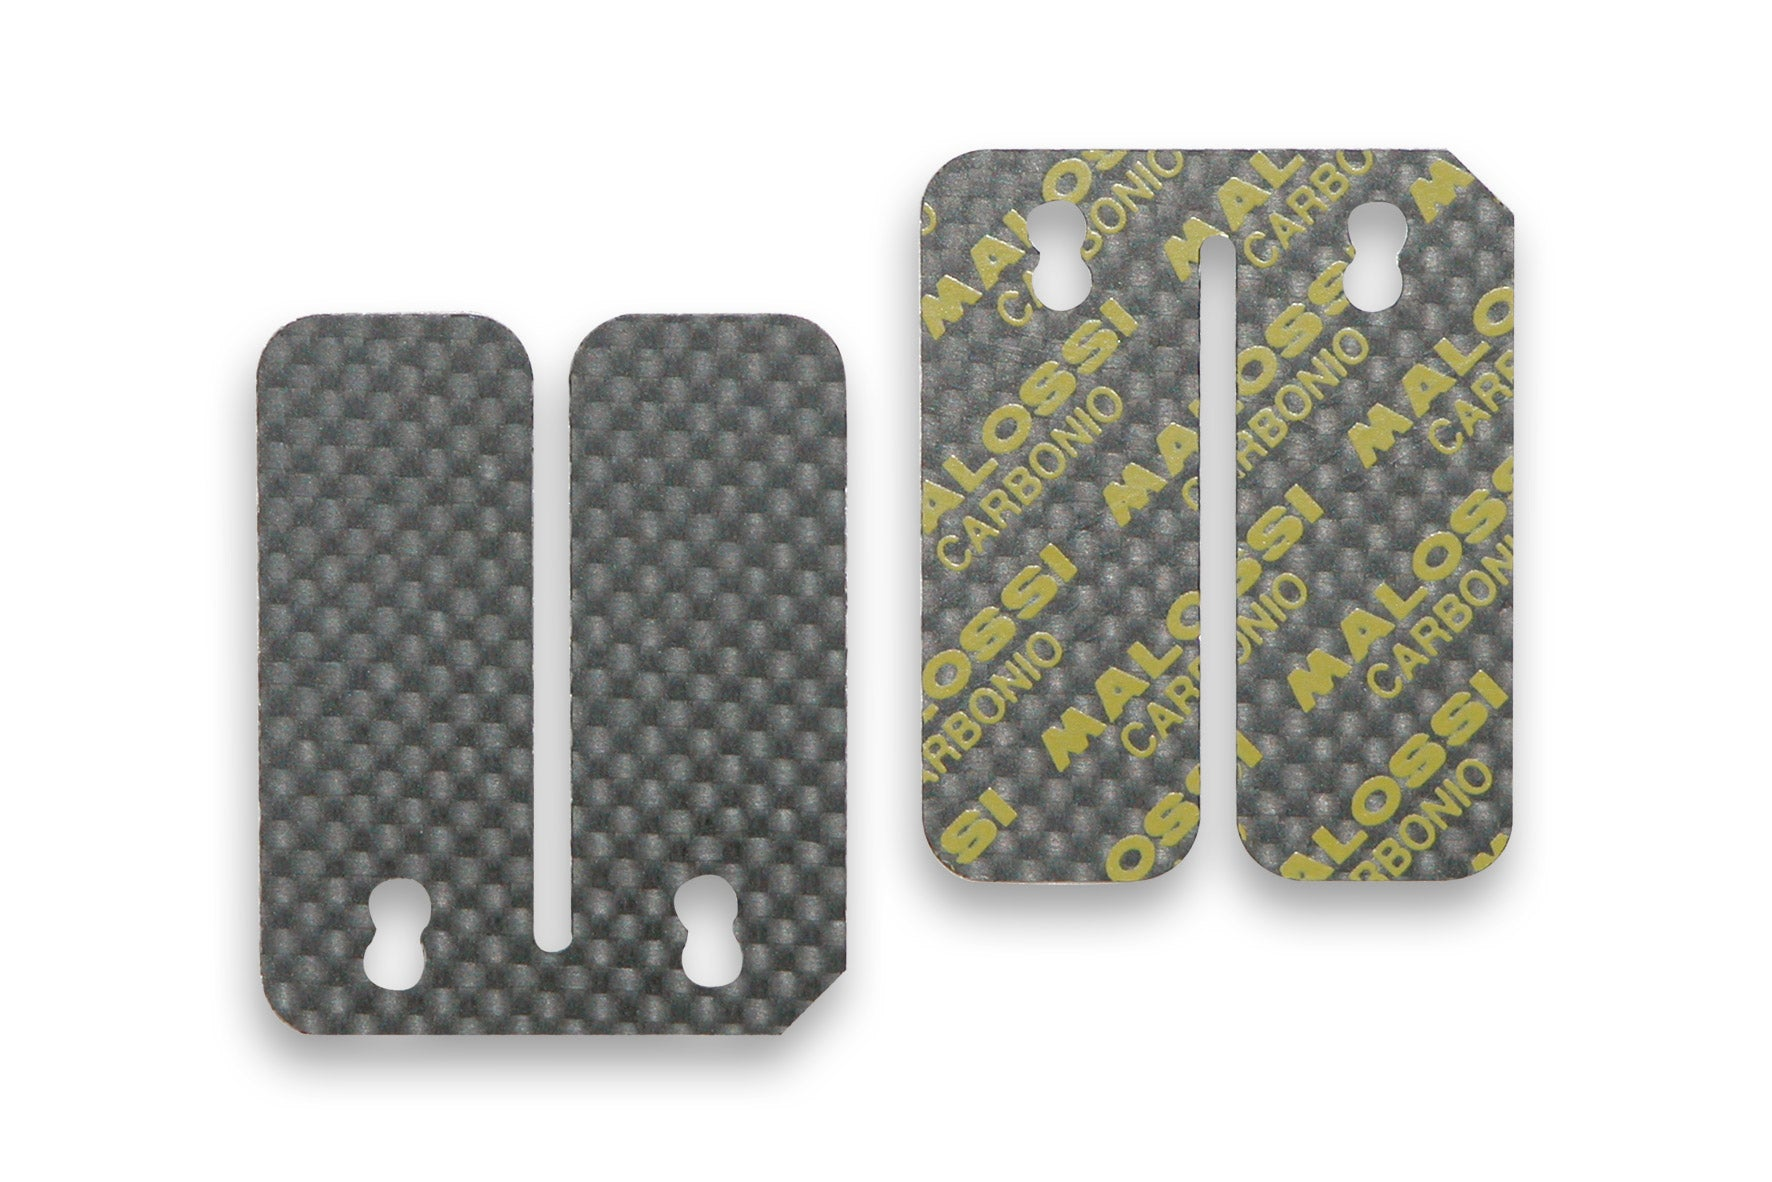 Malossi Carbon Fiber Reeds for Minarelli - ScooterSwapShop